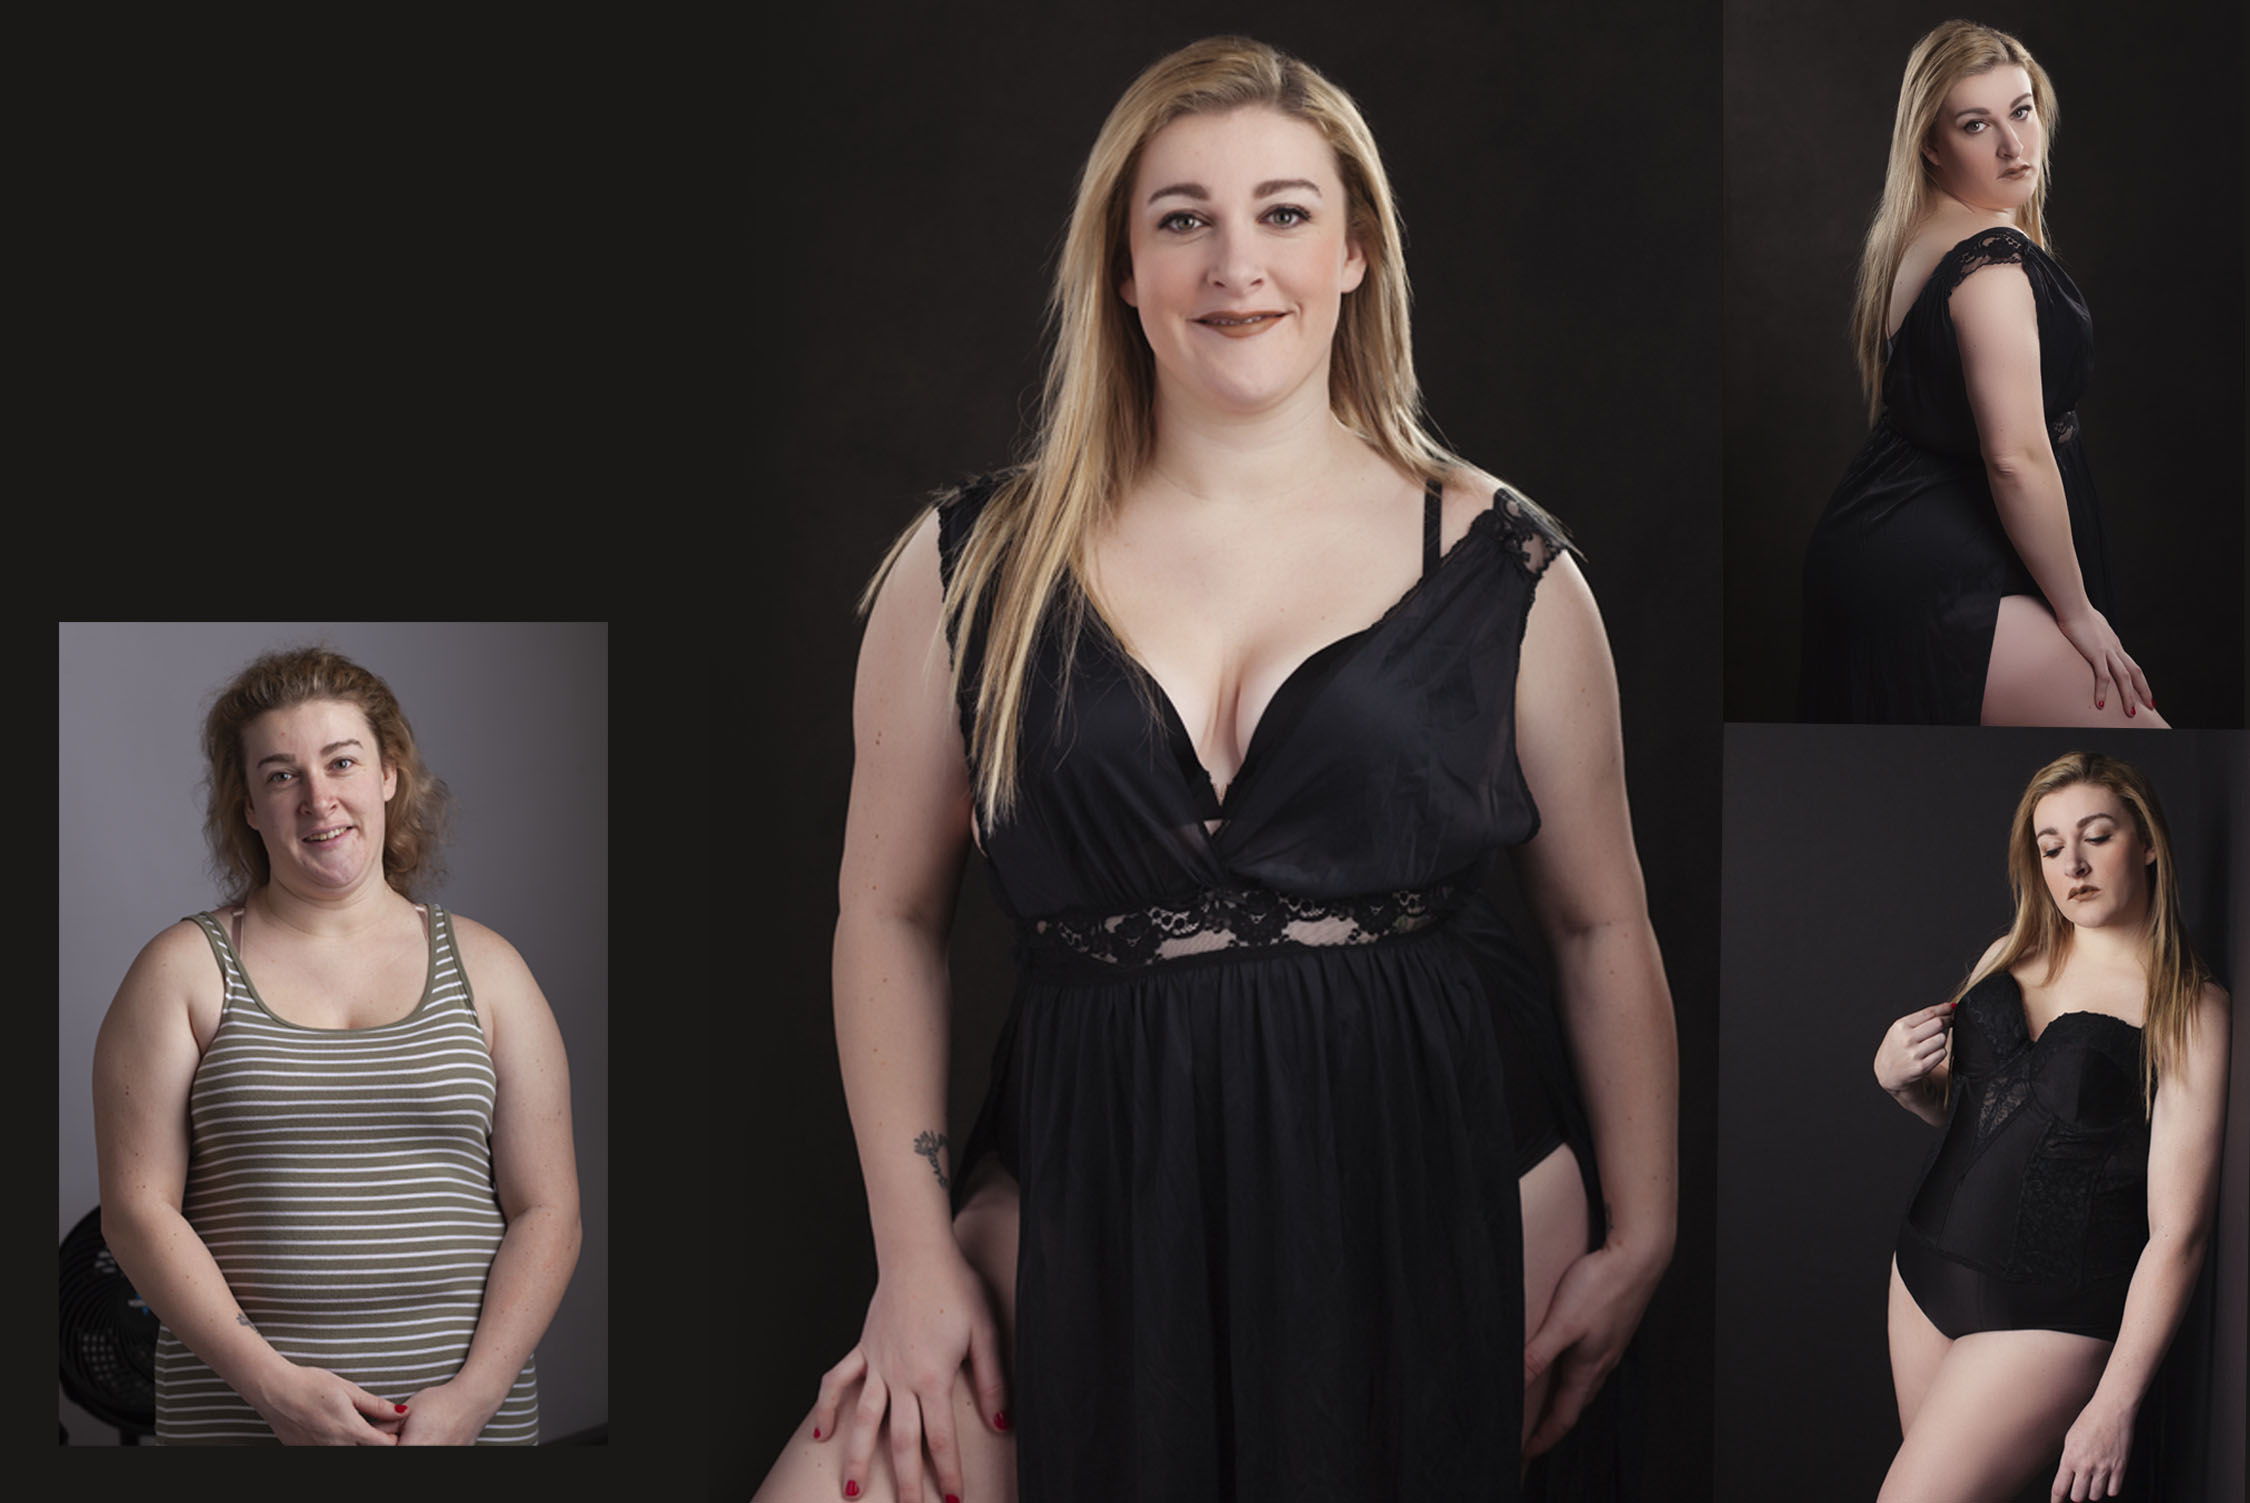 Before and After make over for a glamour boudoir photo session